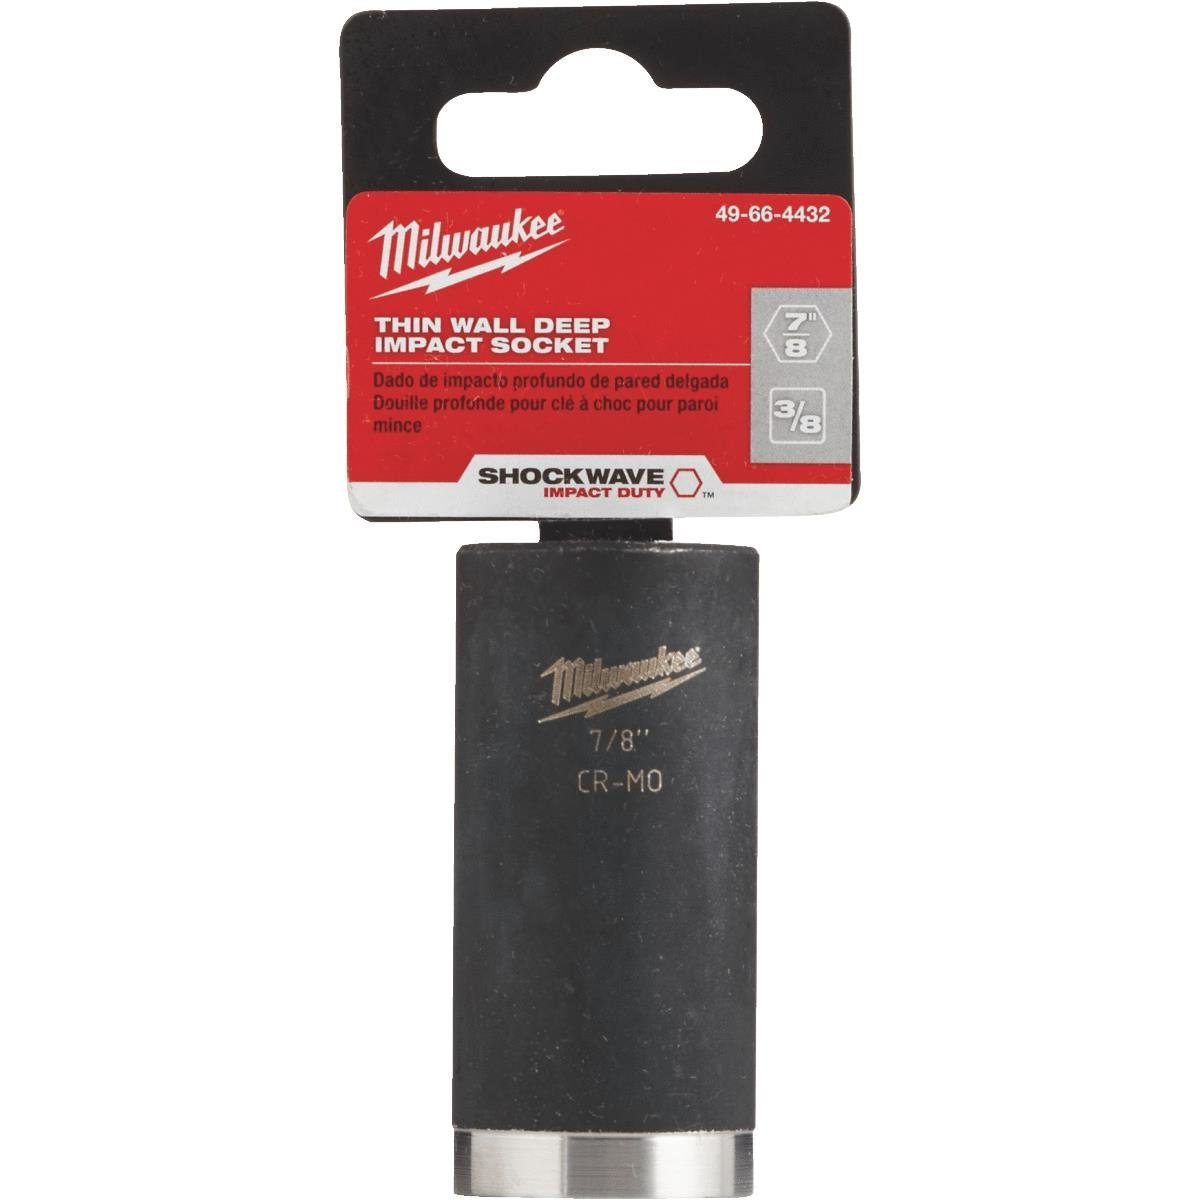 Milwaukee® SHOCKWAVE™ 49-66-4462 Deep Well Thinwall Socket, Imperial, 1/2 in Square Drive, 7/16 in Impact Socket, 6 Points